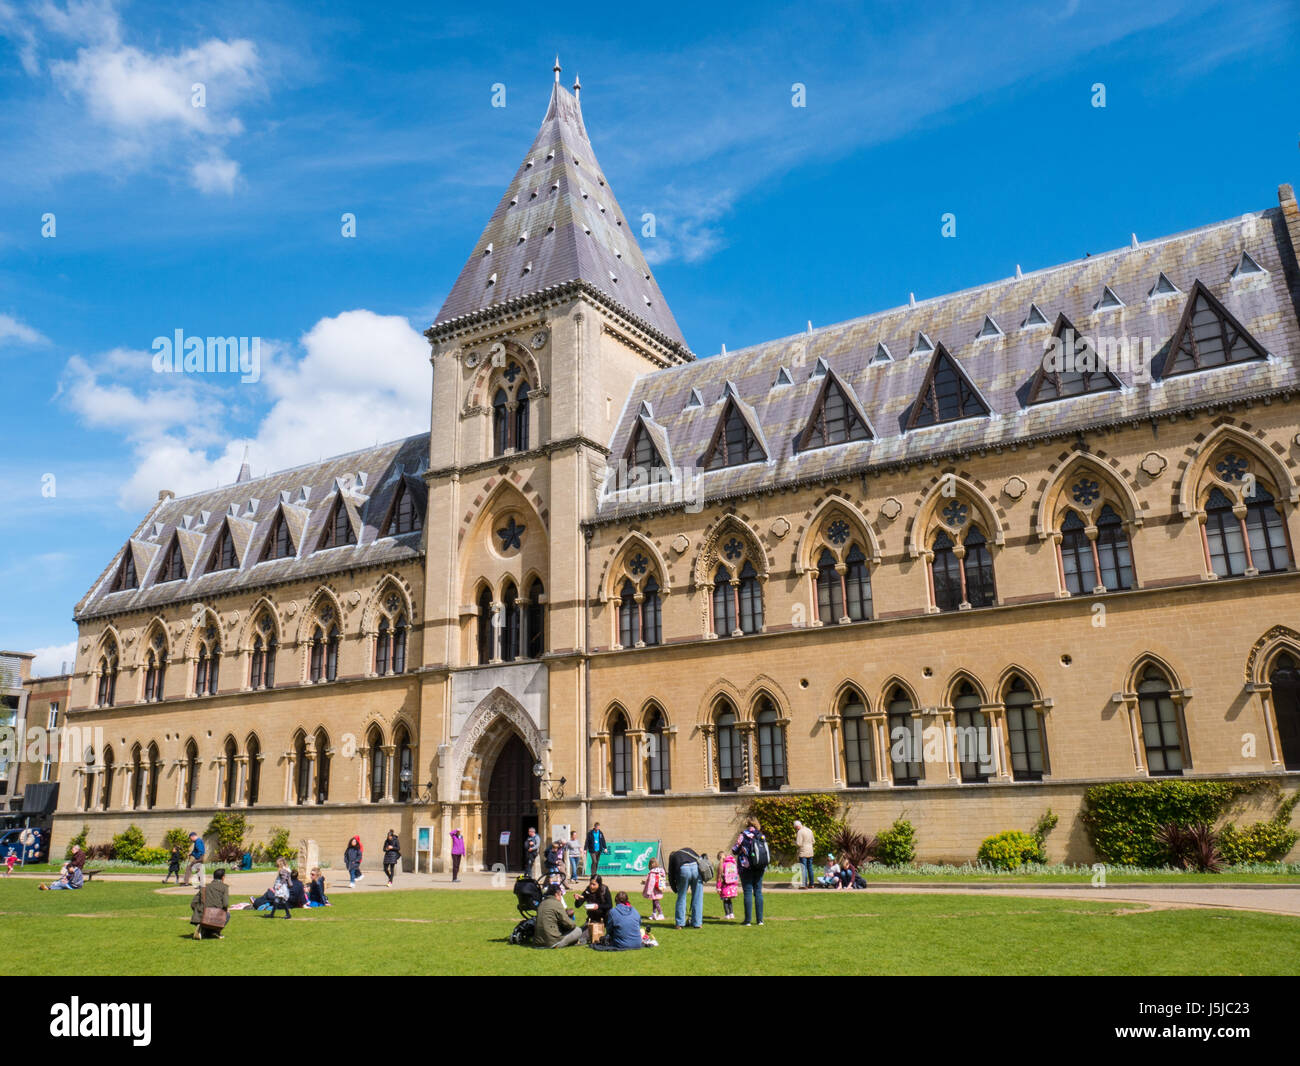 Oxford University Museum of Natural History / Pitt Rivers Museum, Oxford, Oxfordshire, England, UK, GB. - Stock Image